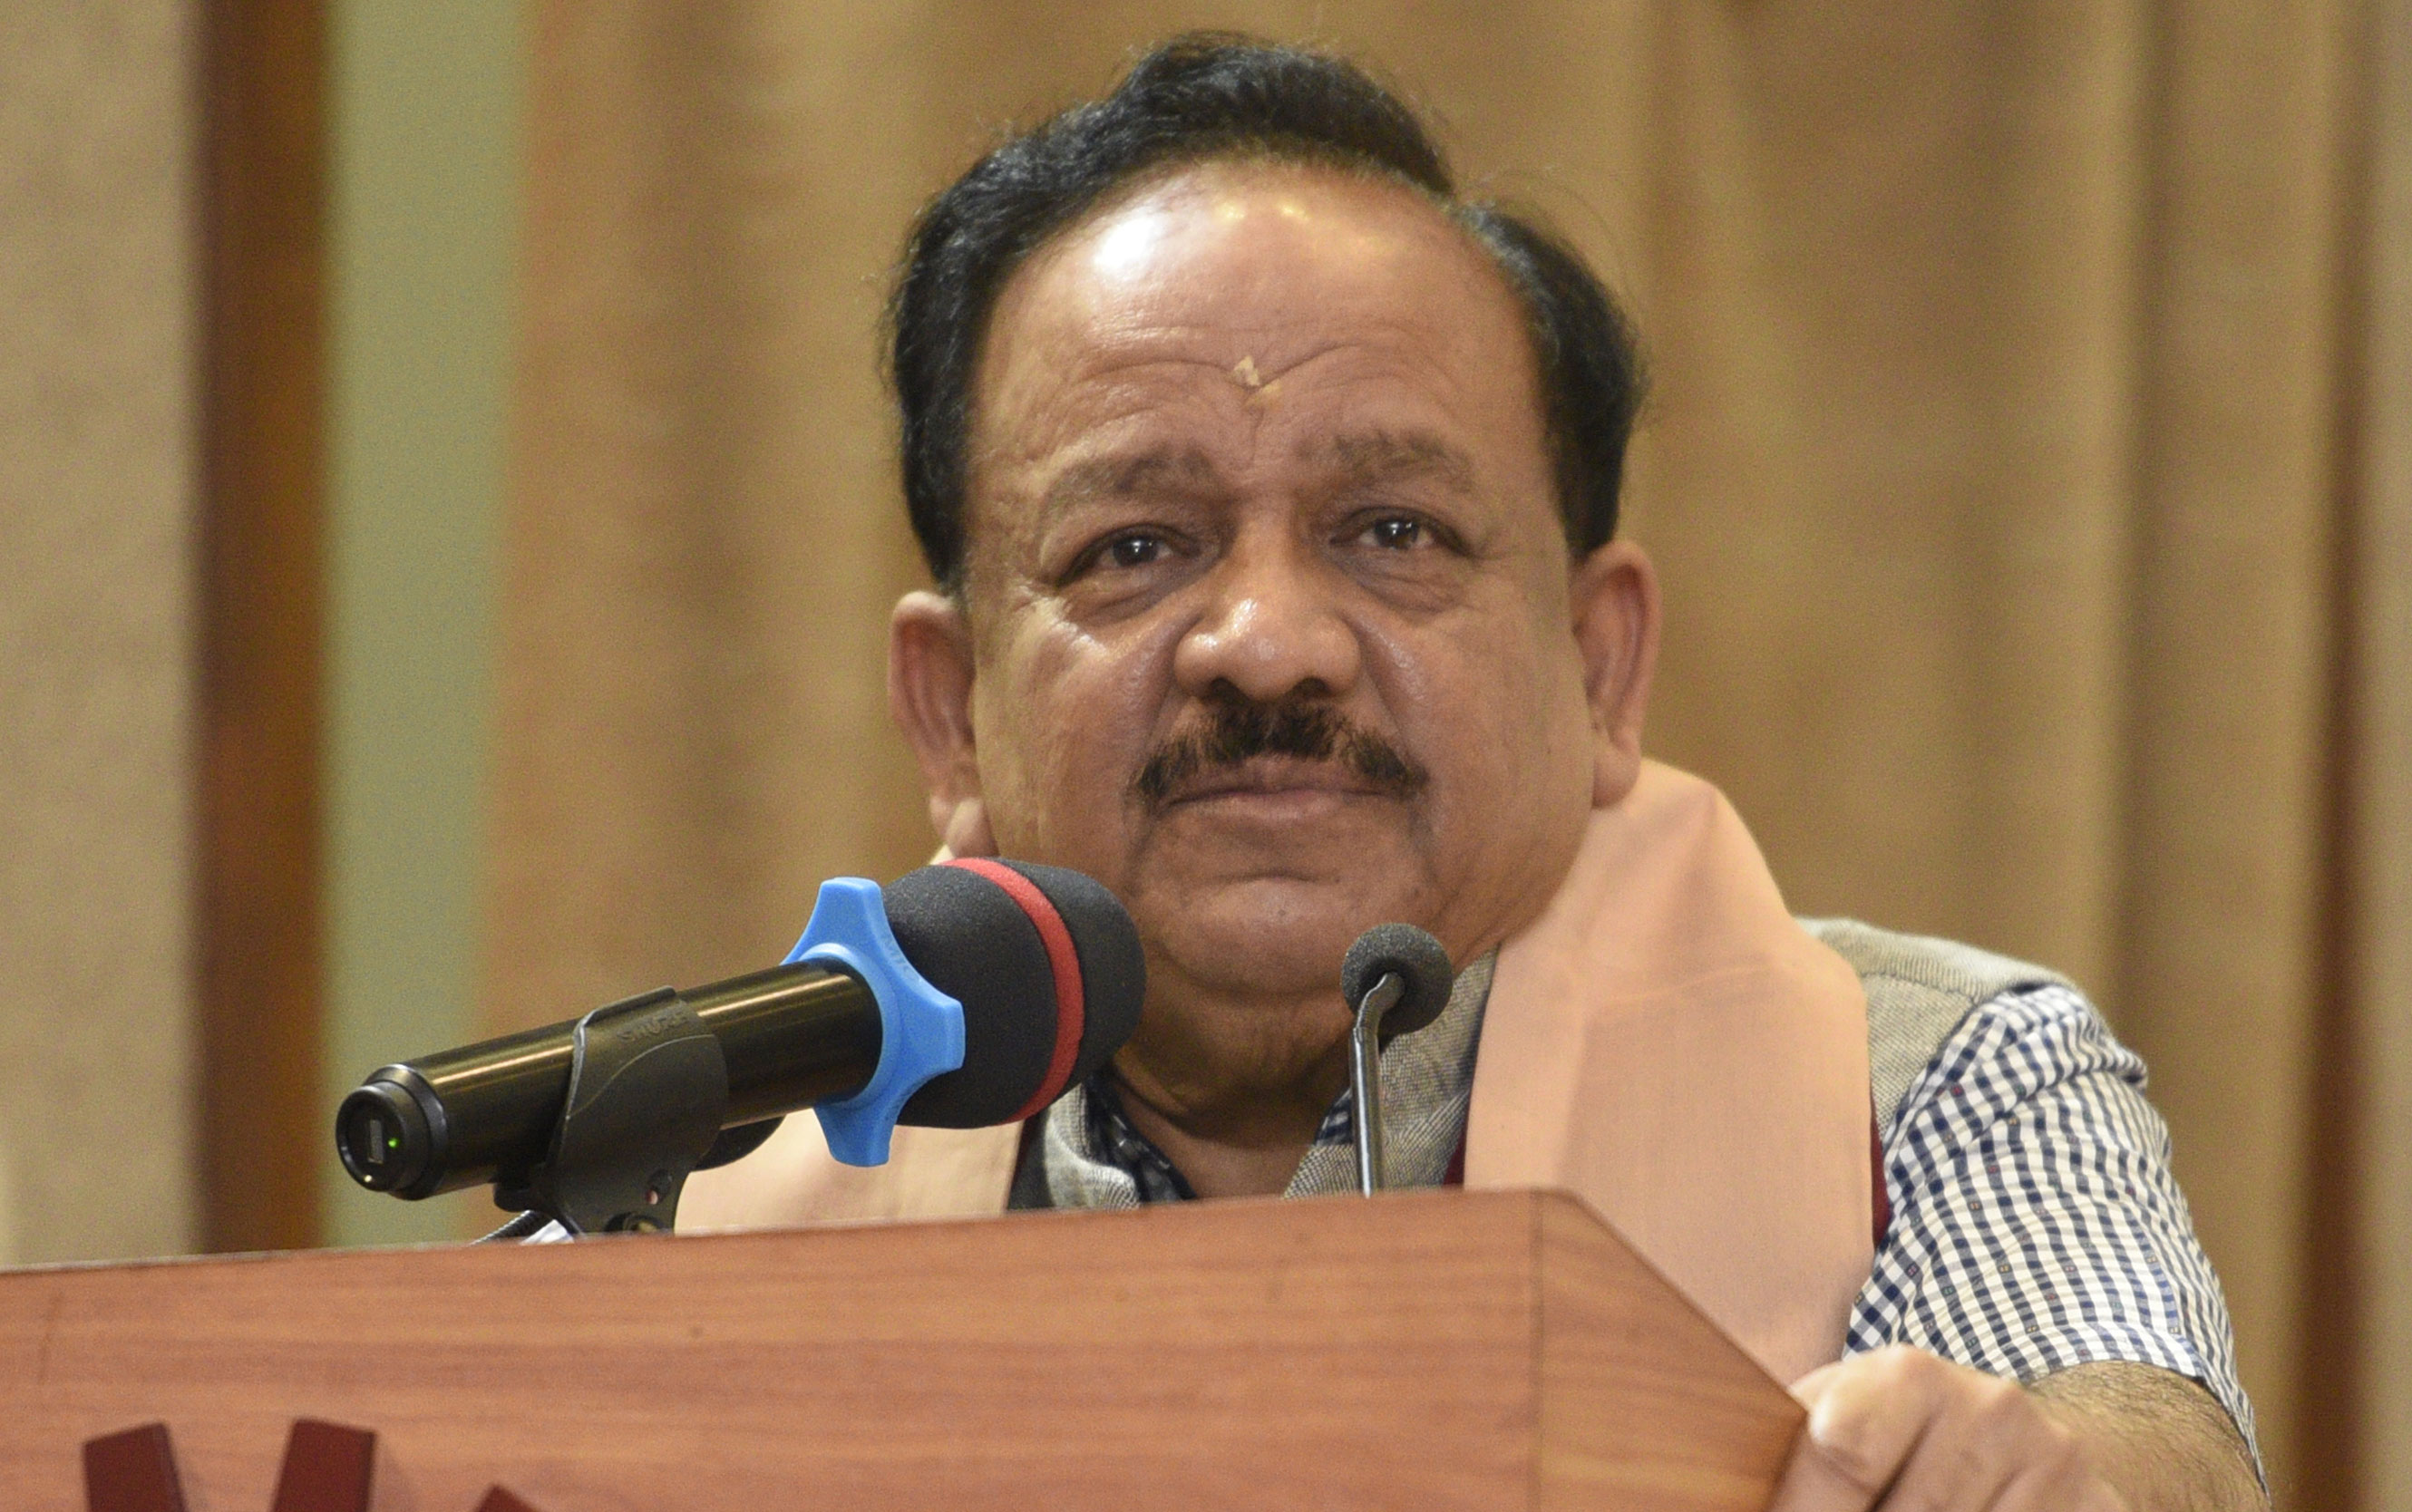 Harsh Vardhan, who was describing key features of the National Medical Commission Act, 2019, said the changes would lower costs of medical education, enhance the number of seats and provide more people access to healthcare.